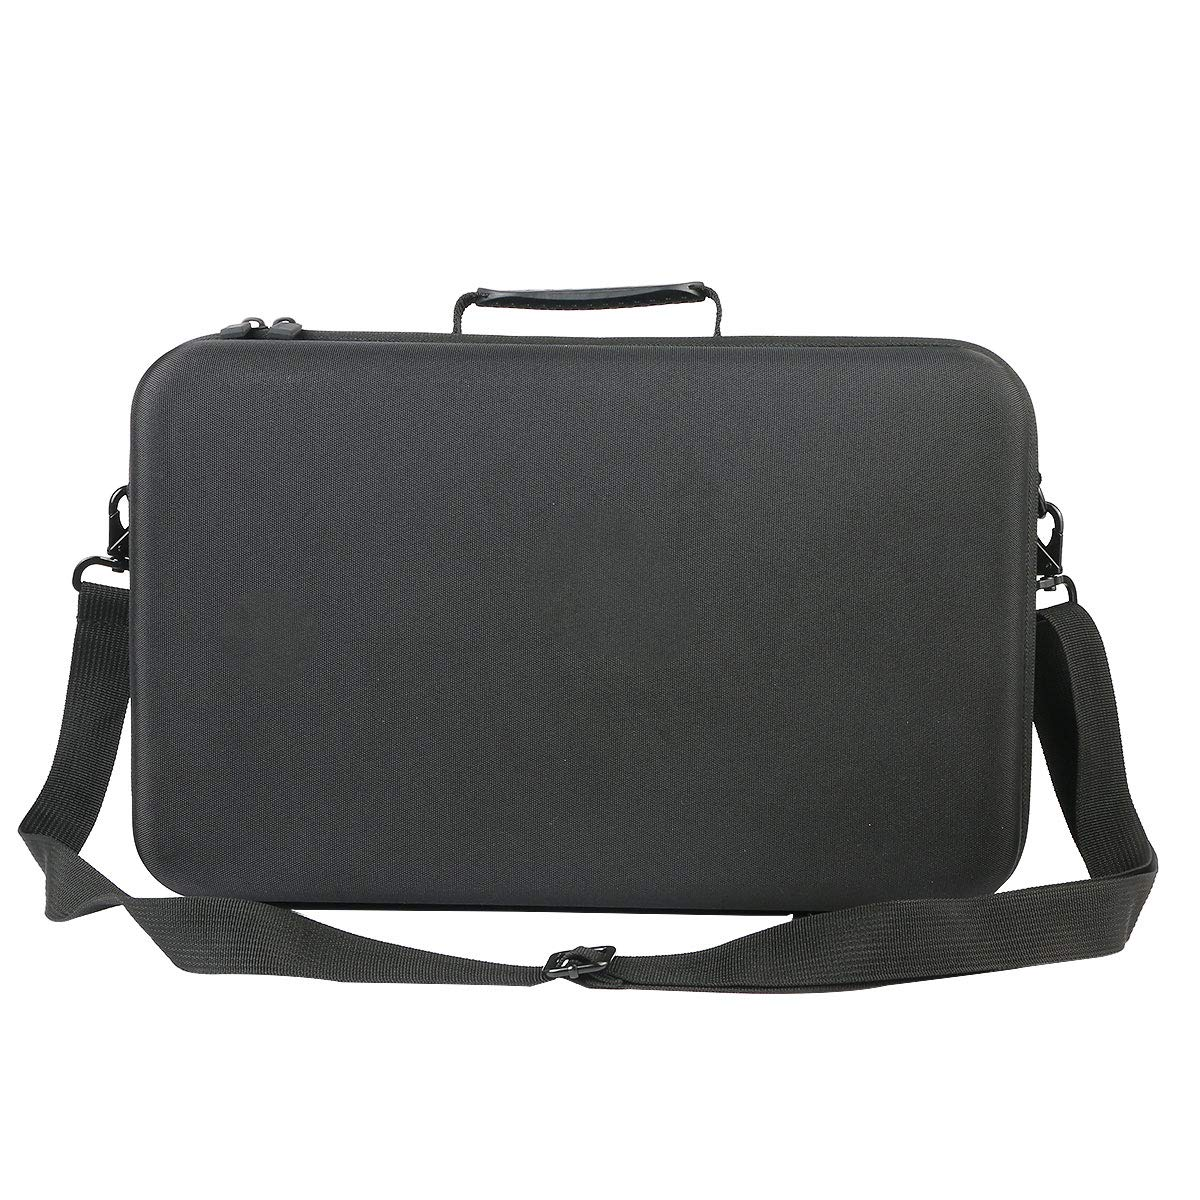 co2crea Hard Travel Case for HP Tango Smart Home Printer 2RY54A (Can't to fit HP Tango Cover) by Co2Crea (Image #4)